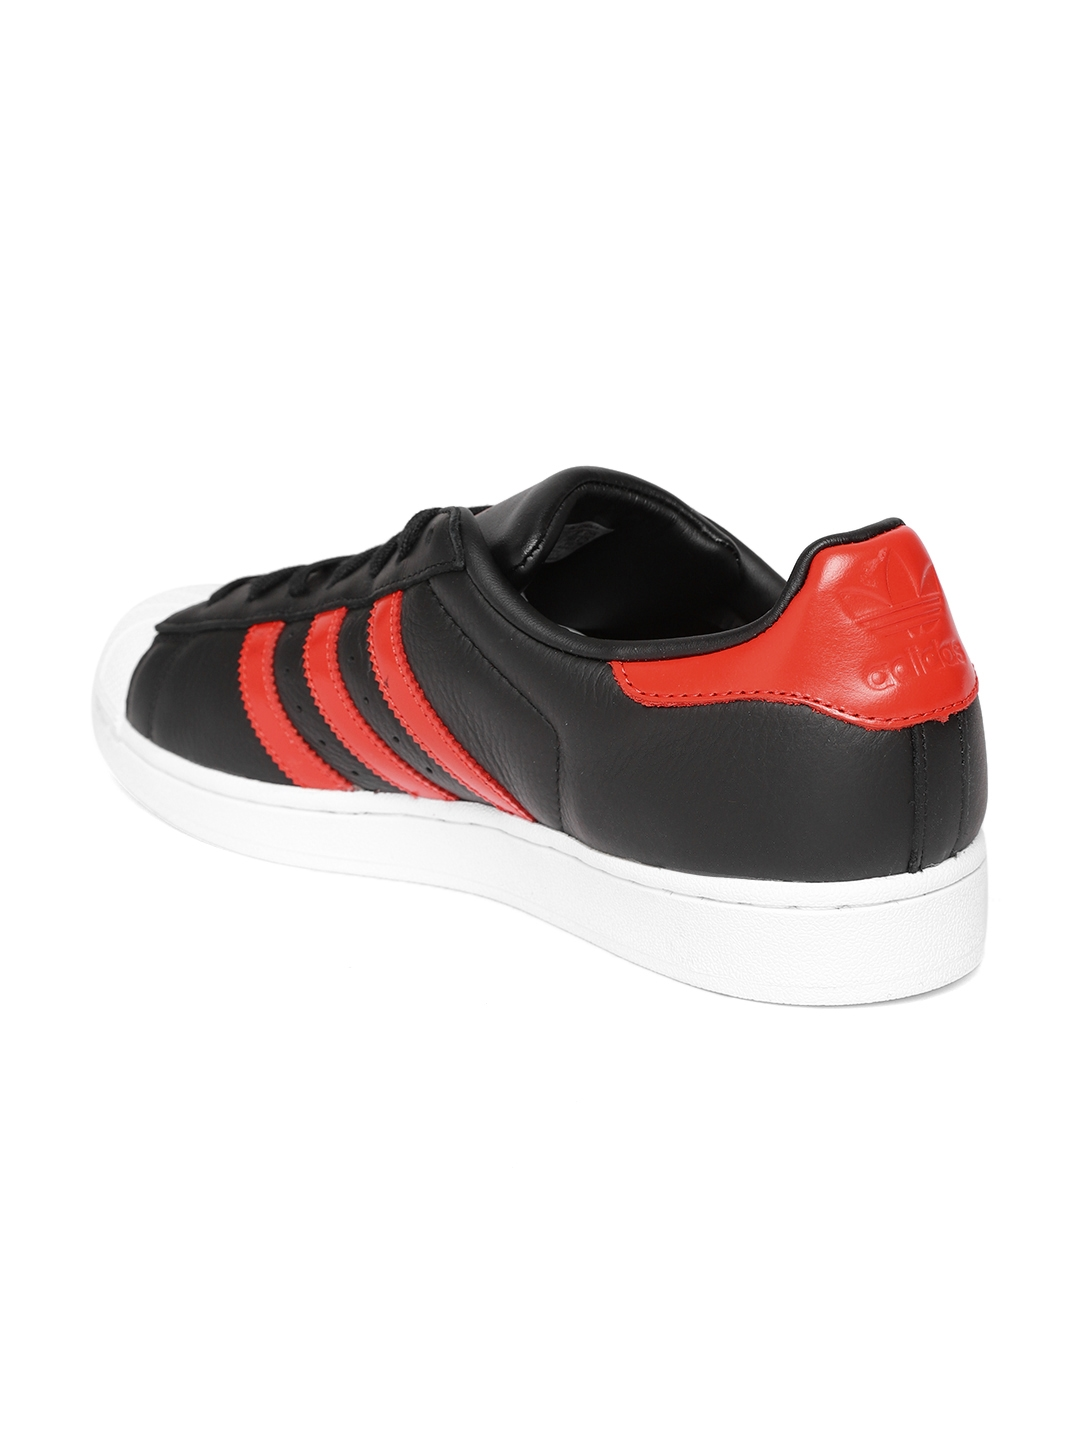 a7d787d2e Buy ADIDAS Originals Men Black Leather Superstar Sneakers - Casual ...